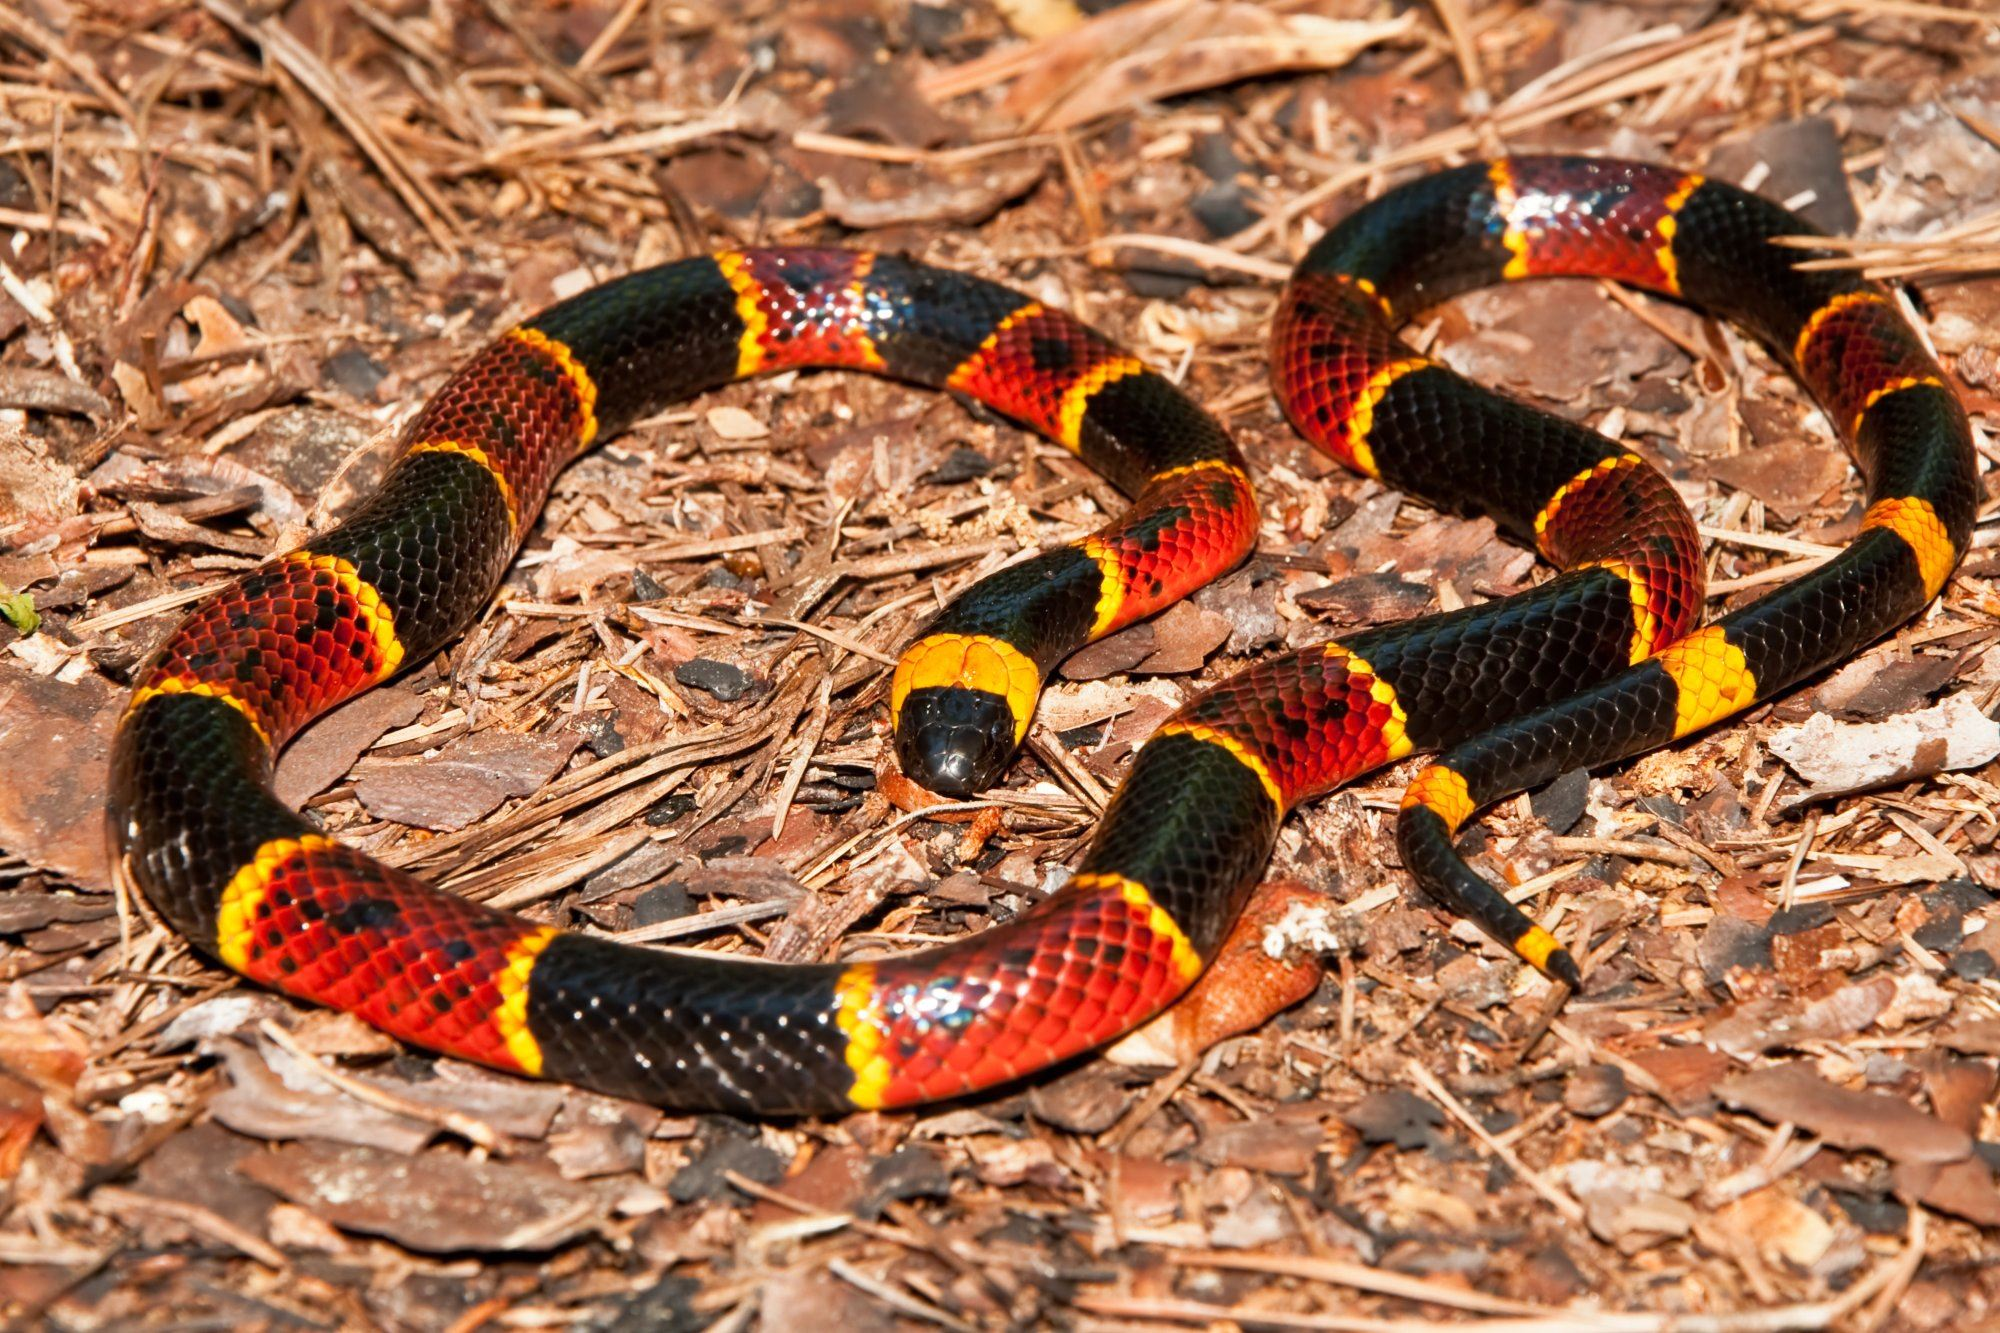 Coral snake on ground